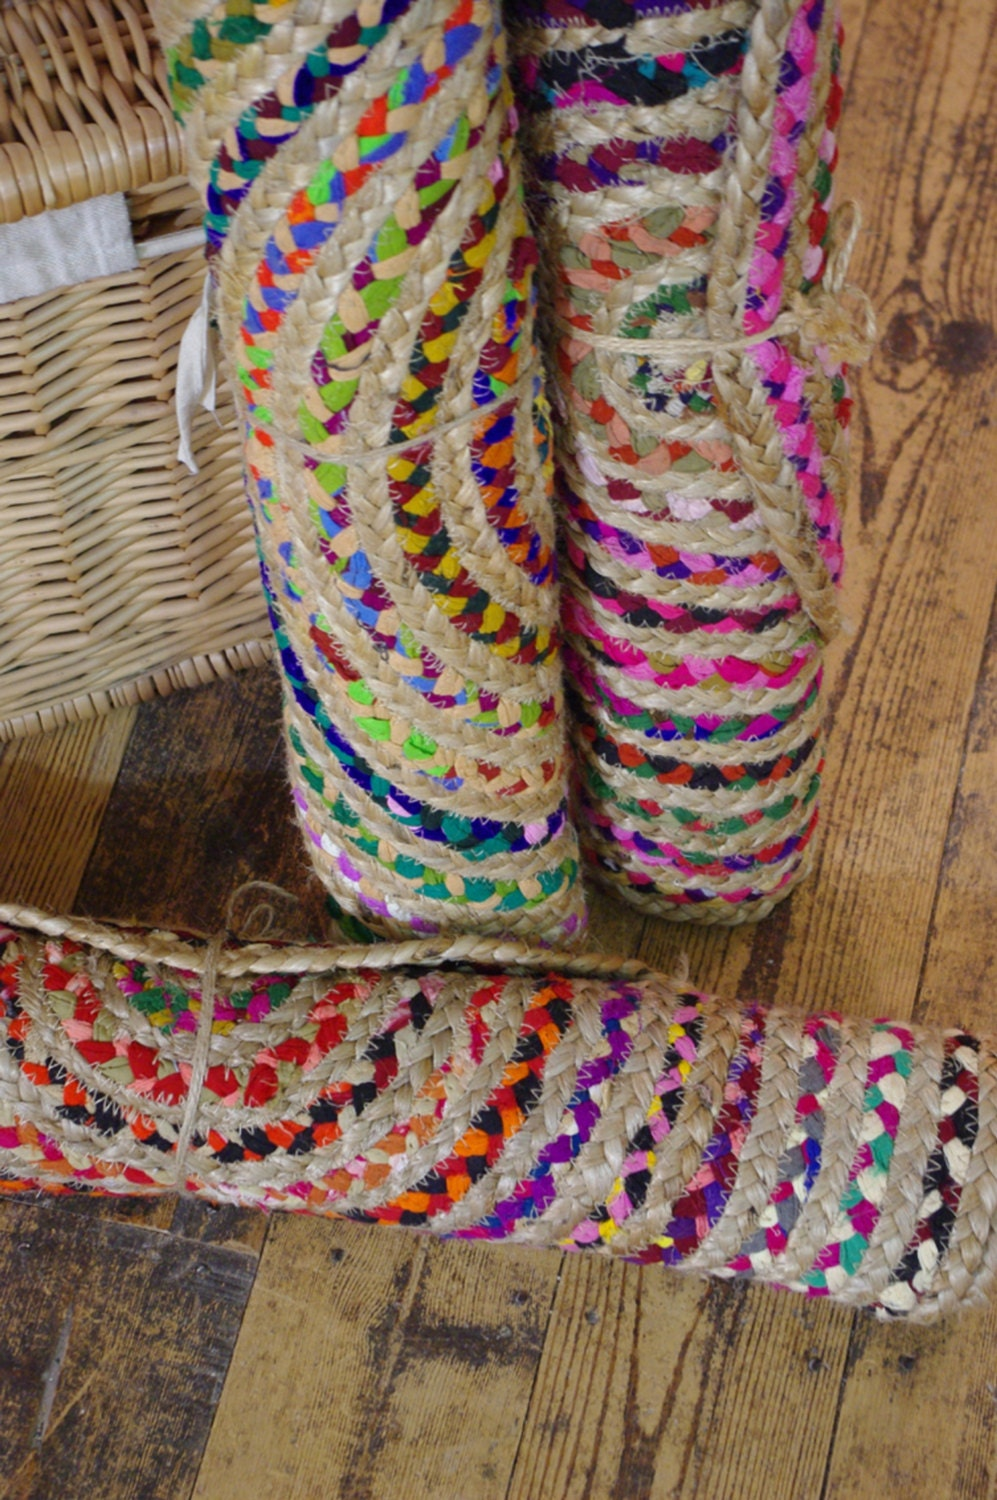 Oval Braided Plaited Jute Recycled Fabric Rag Rug Mat 60 X 90